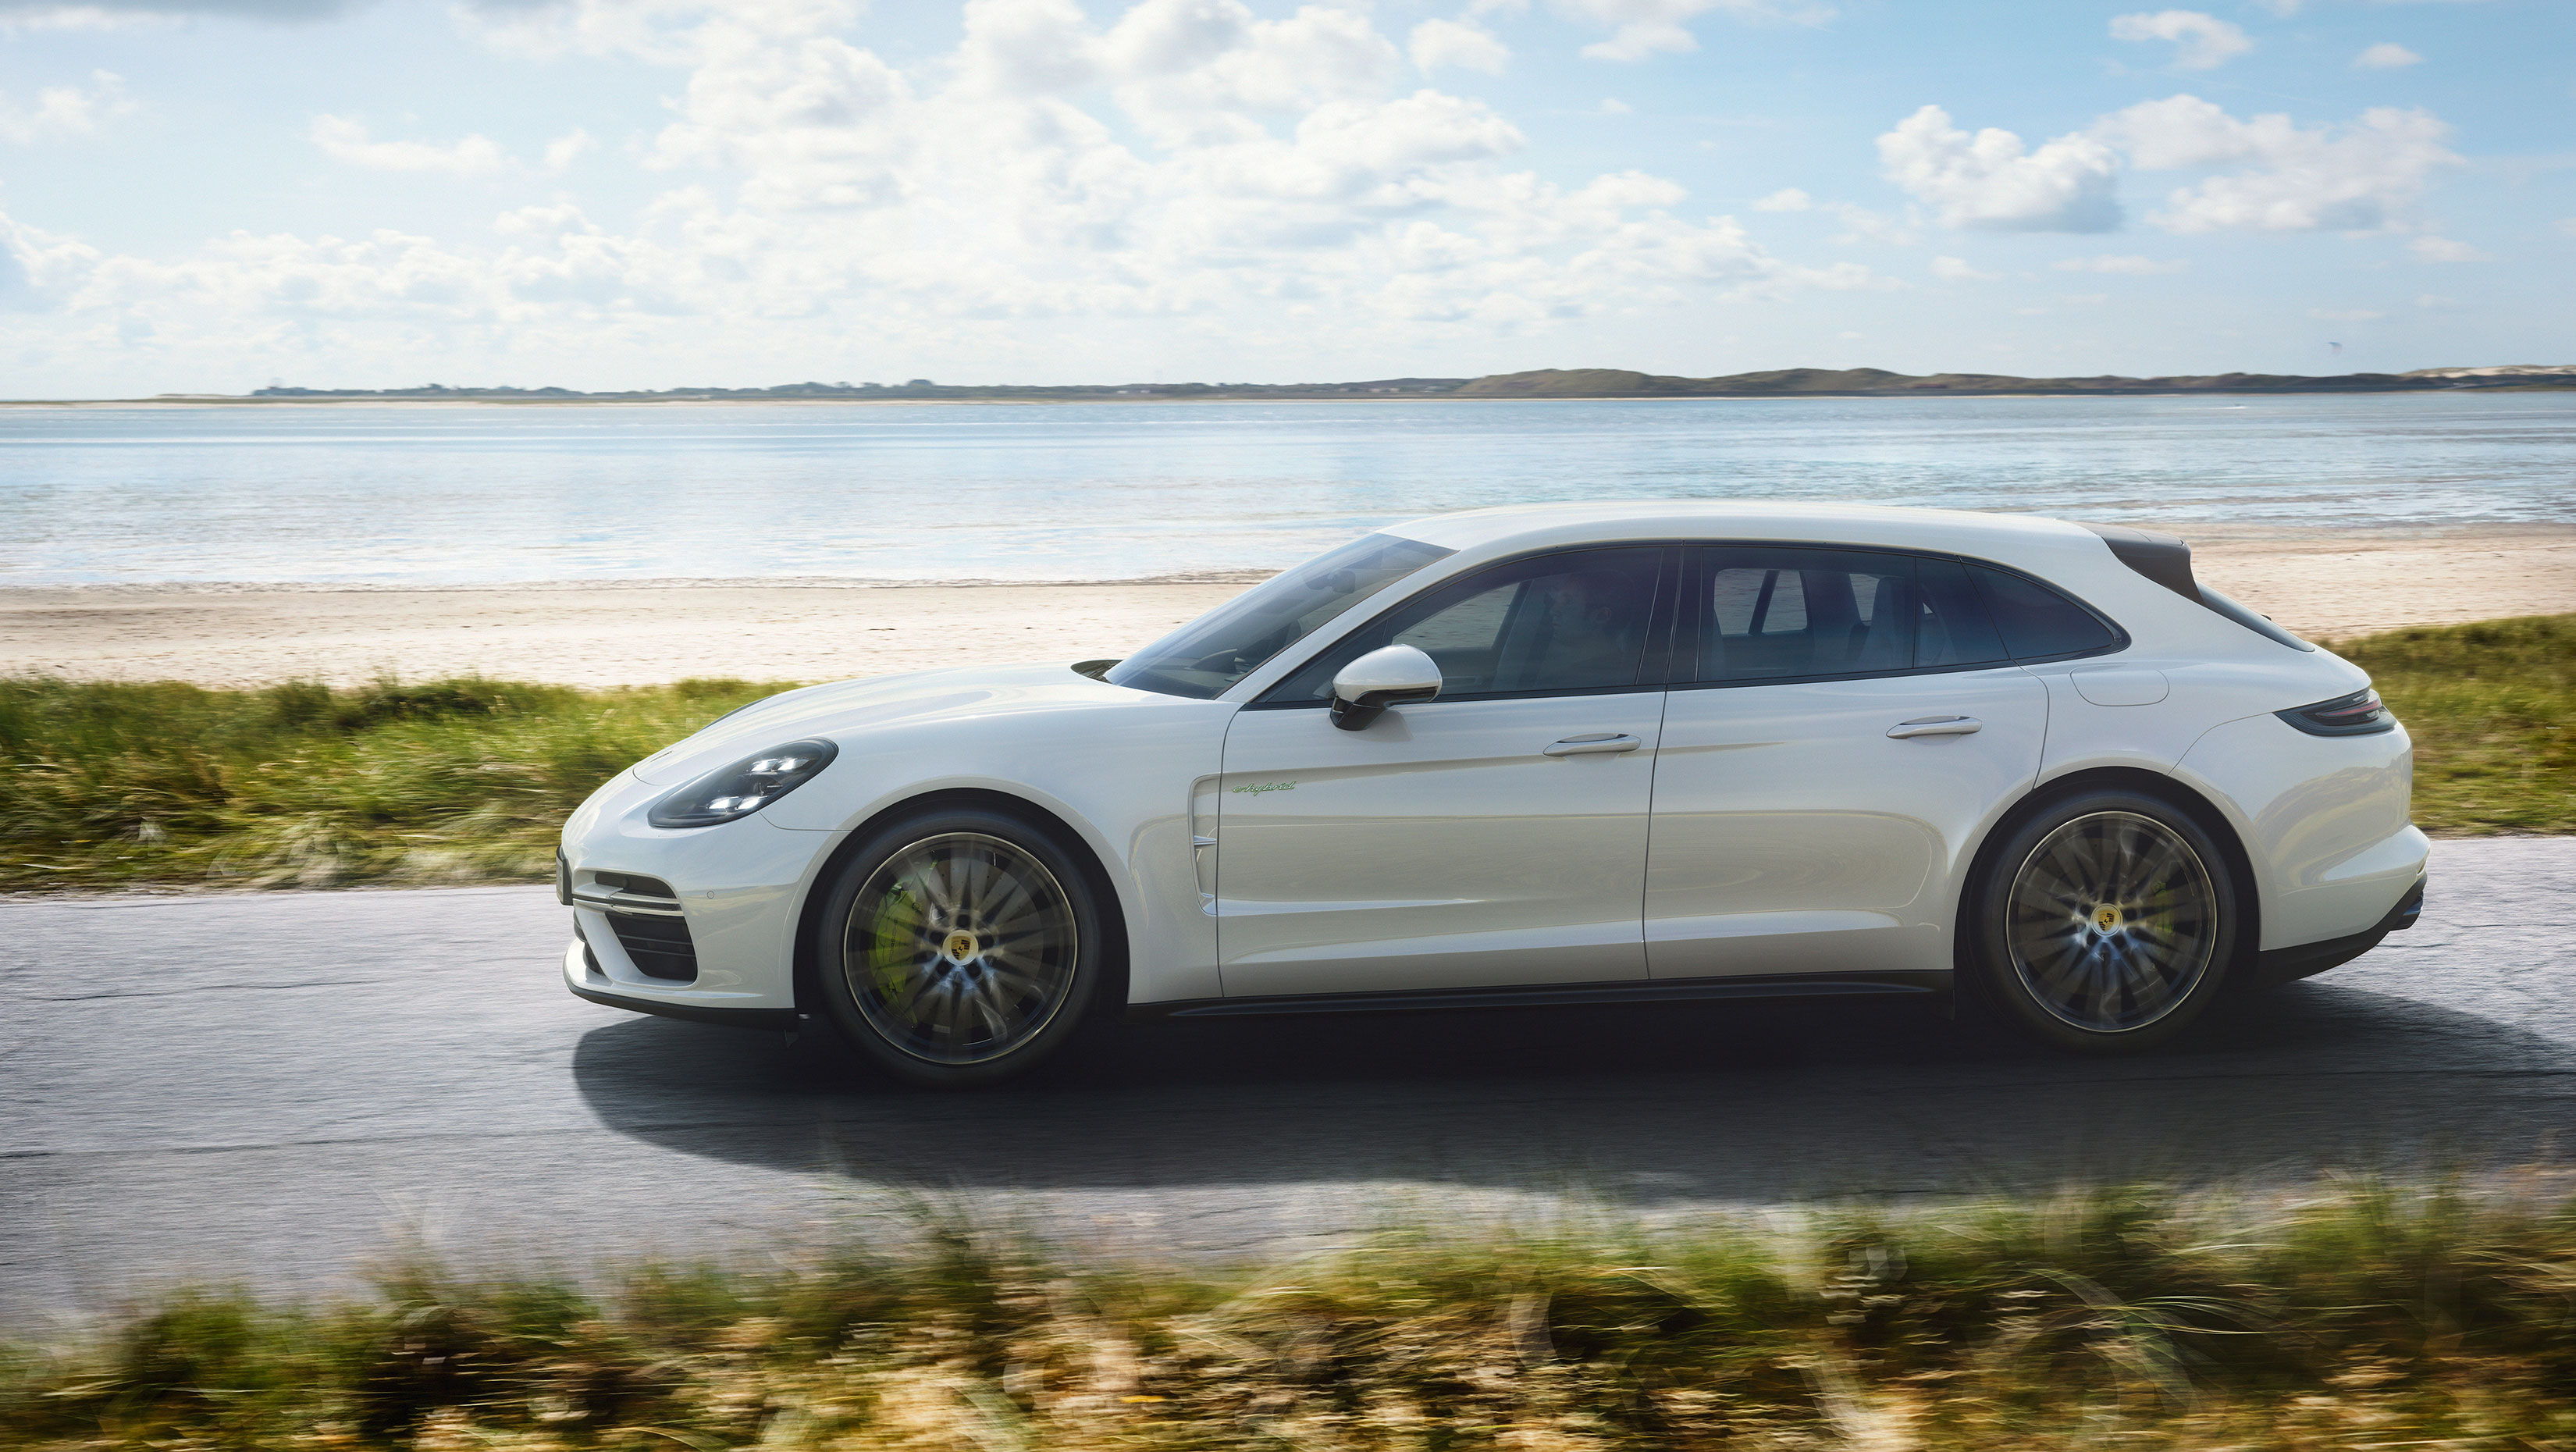 the interior of the panamera is a nice place too it has space for four five is a crowd and an interesting array of touchscreens touch capacitive